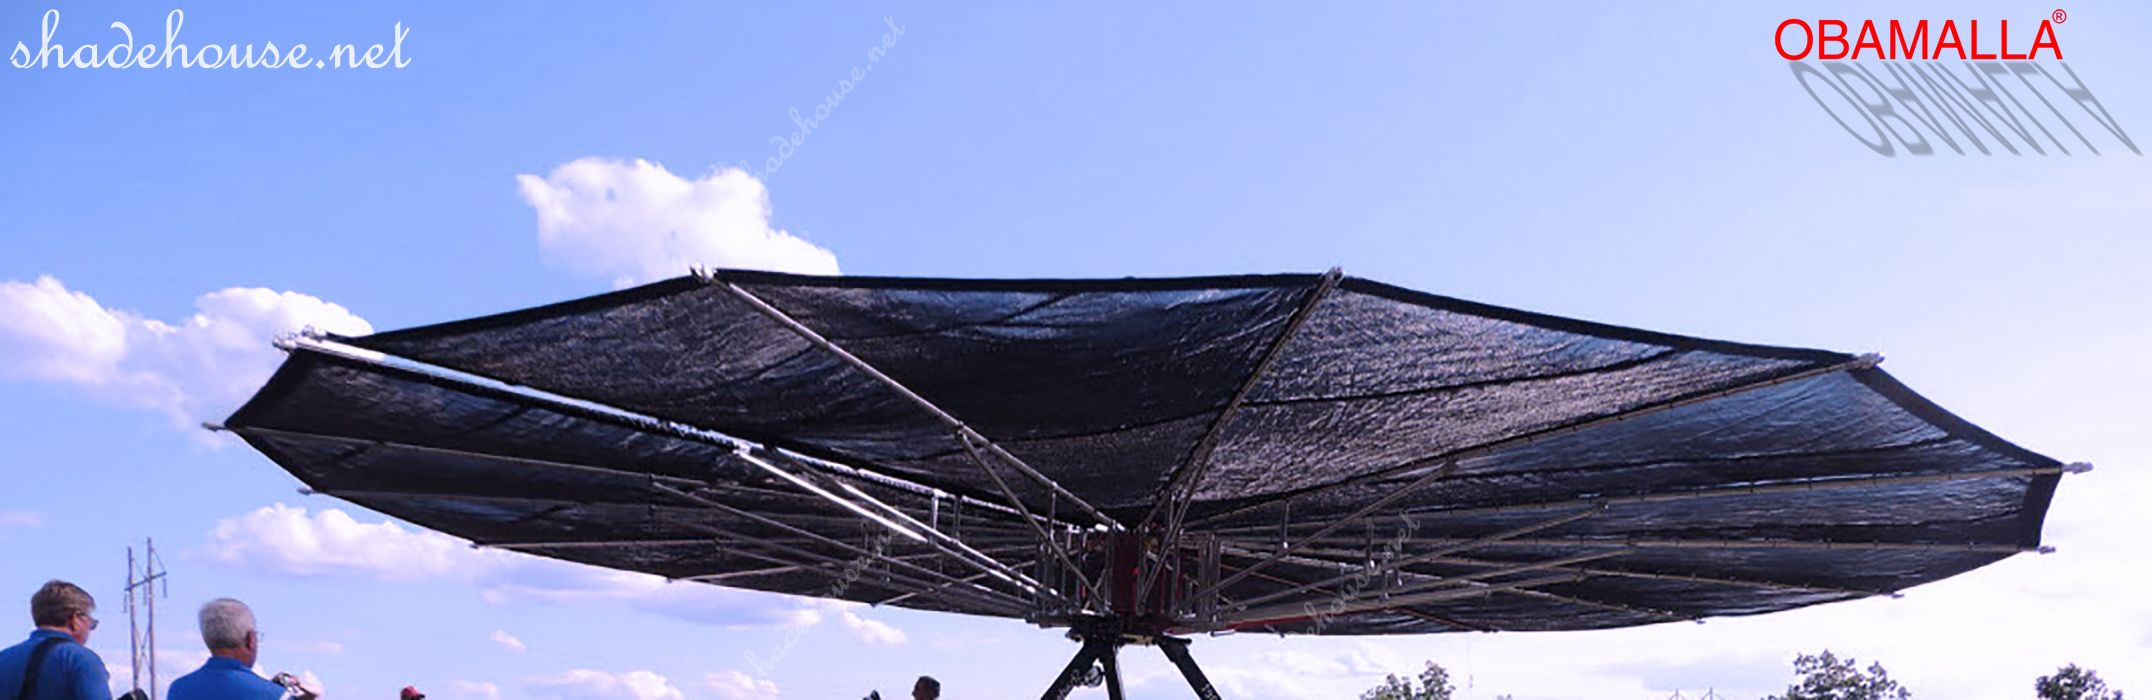 Shade cloth movil protecting people of the sun.